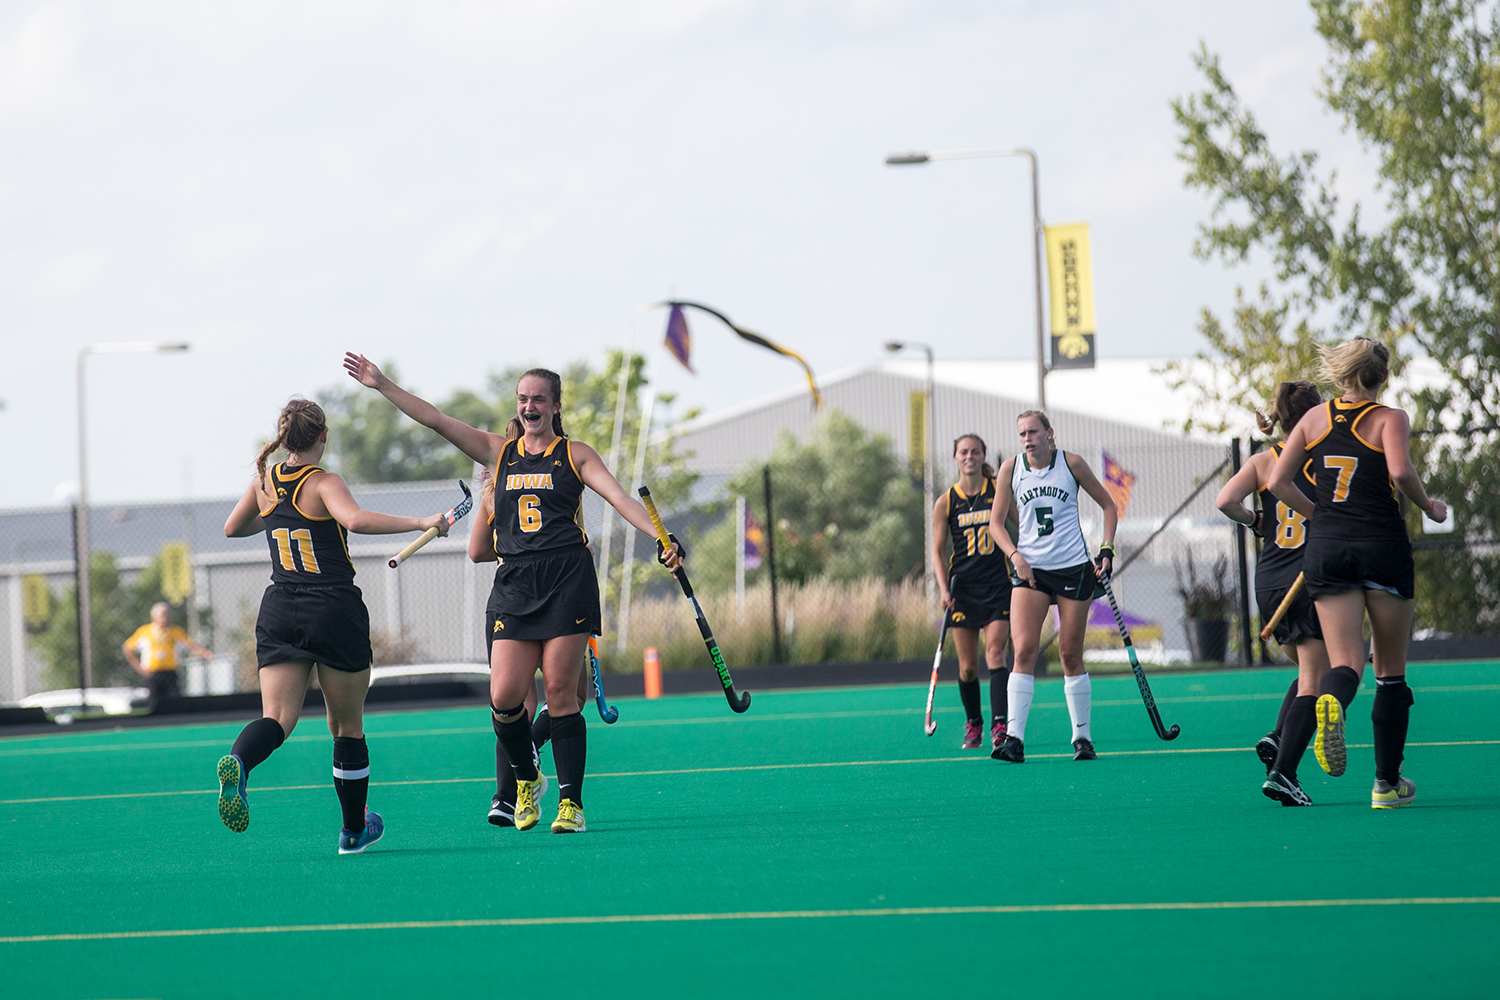 Iowa%27s+Anthe+Nijziel+celebrates+with+Katie+Birch+during+a+field+hockey+match+between+Iowa+and+Dartmouth+College+at+Grant+Field+on+Friday%2C+August+31%2C+2018.+The+Hawkeyes+shut+out+the+Big+Green%2C+6-0.